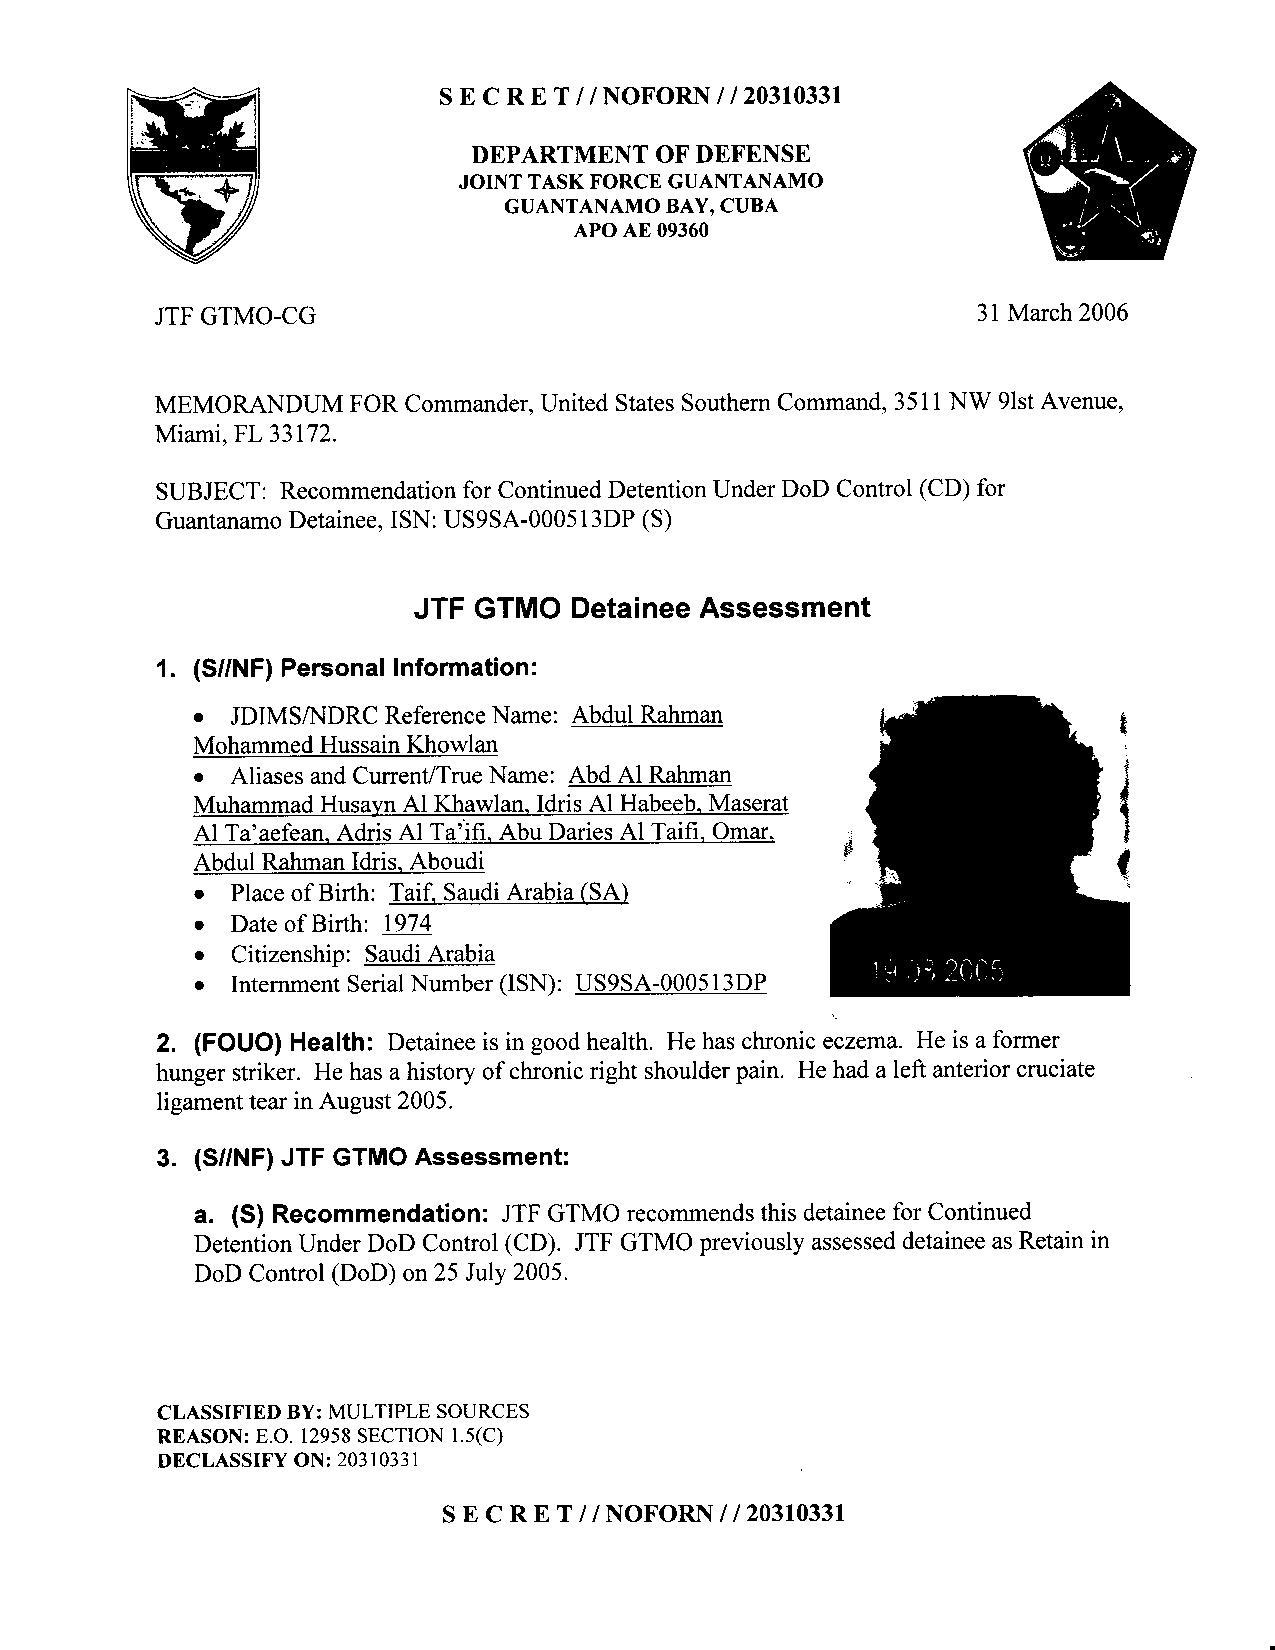 ISN 513's Guantanamo detainee assessment.pdf